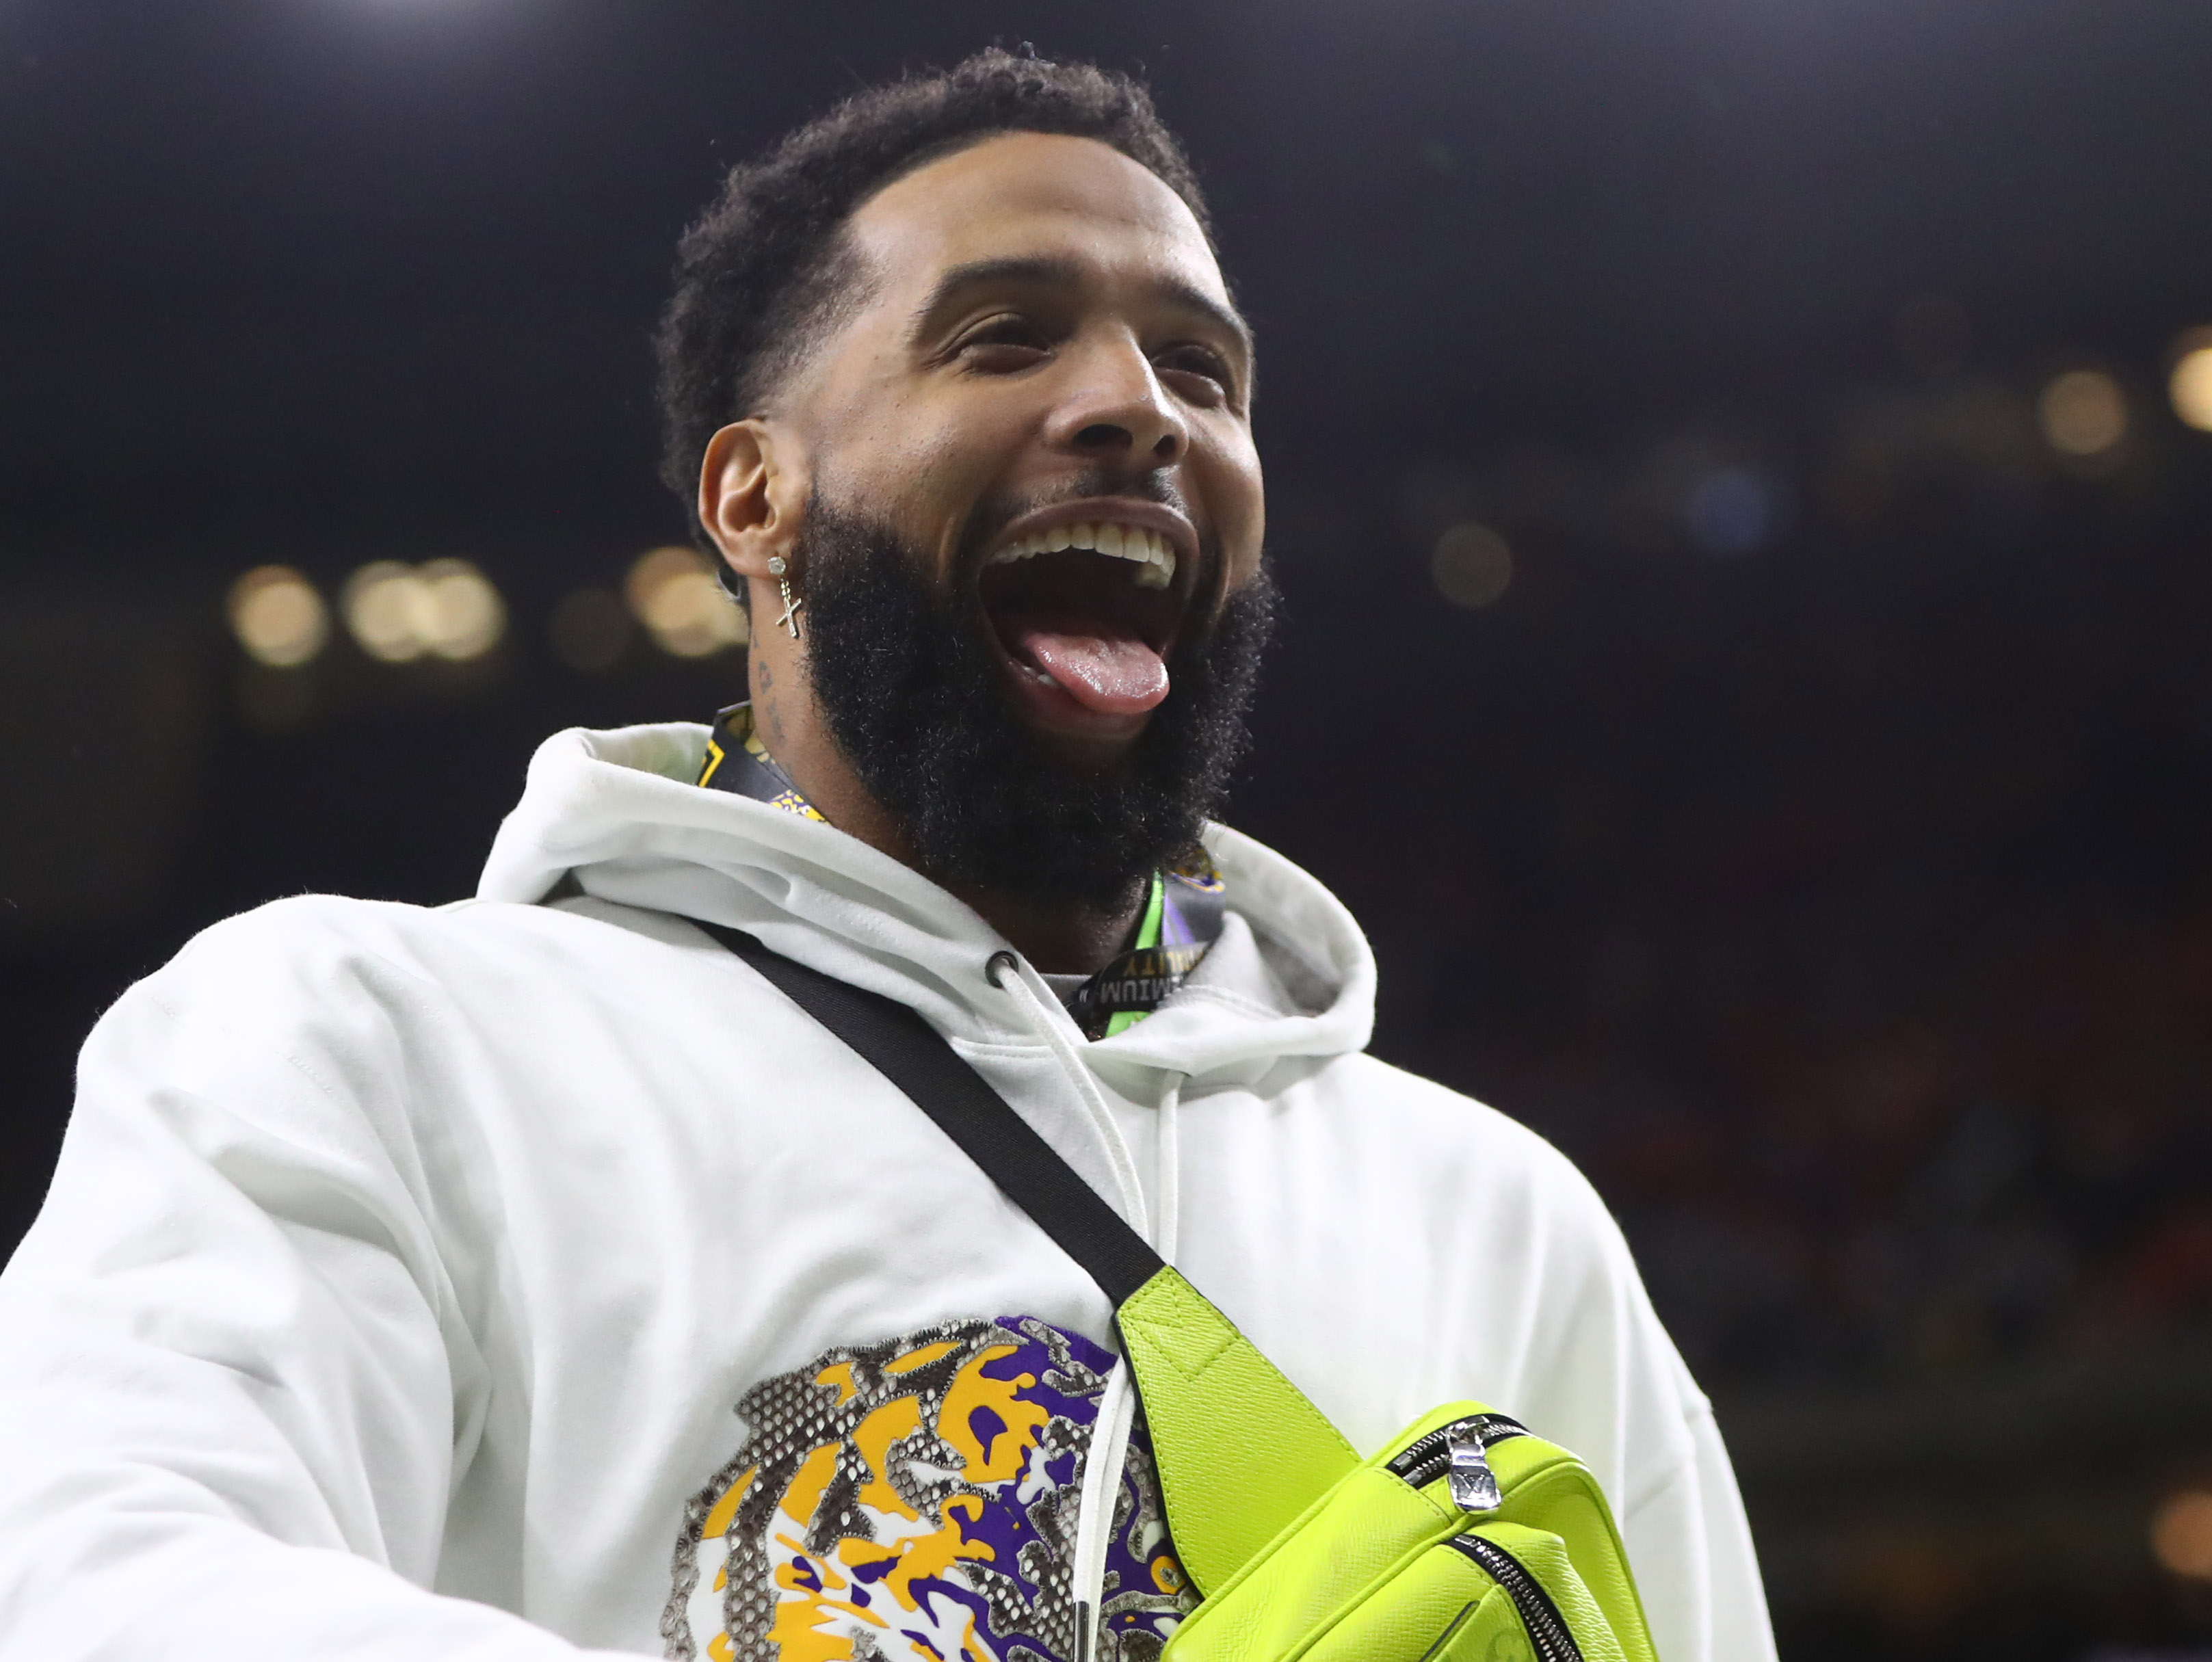 Odell Beckham Jr. predicts 2020 will be one of his best seasons